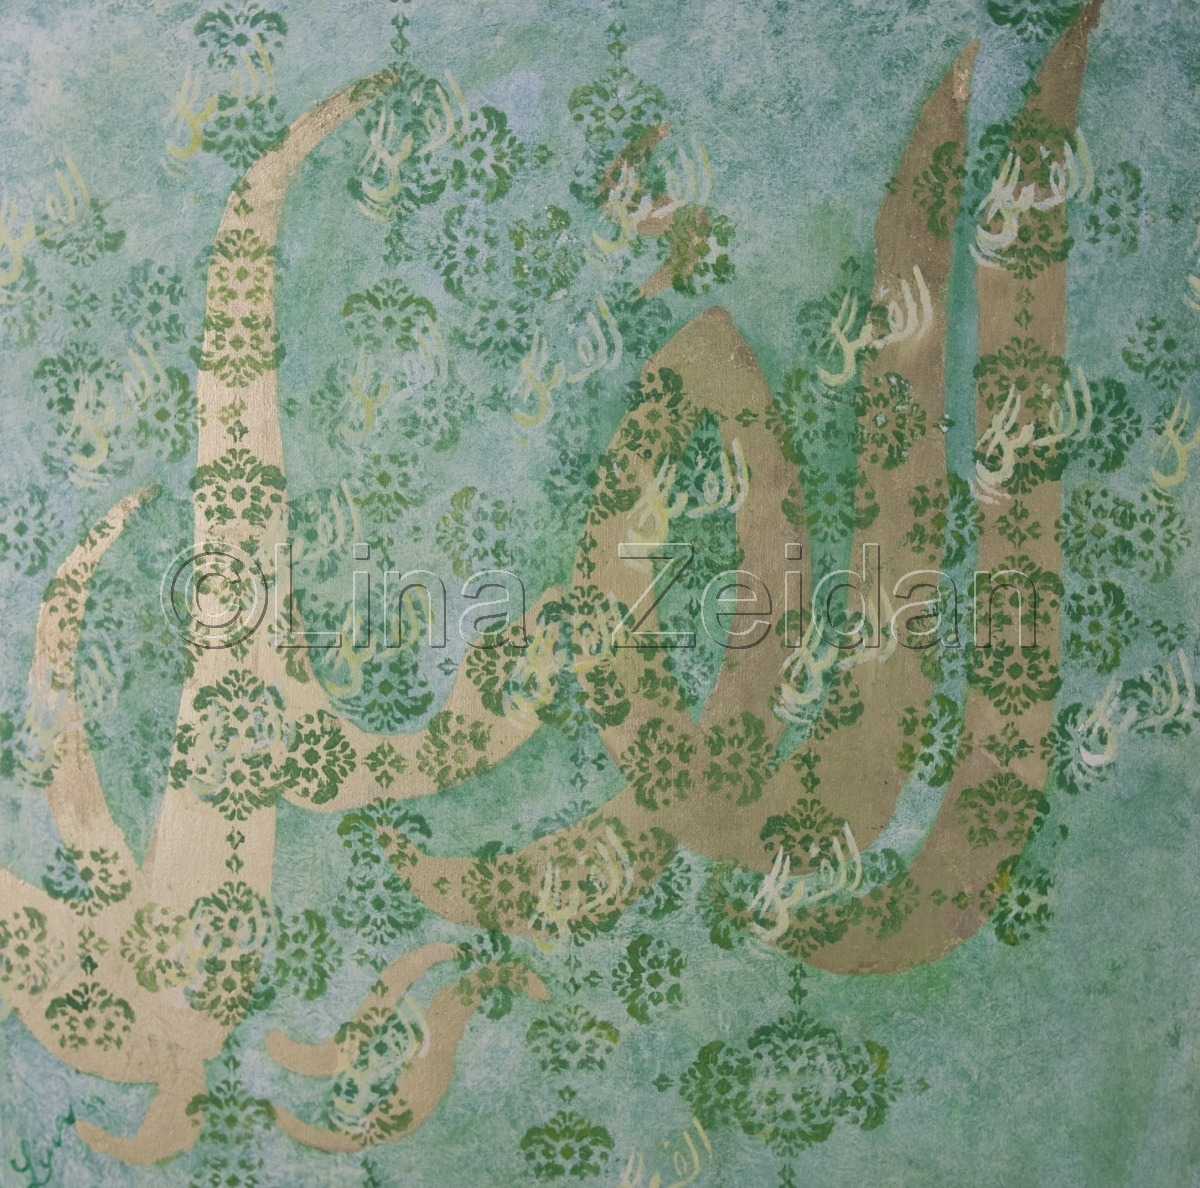 Arabic, Calligraphy (large view)